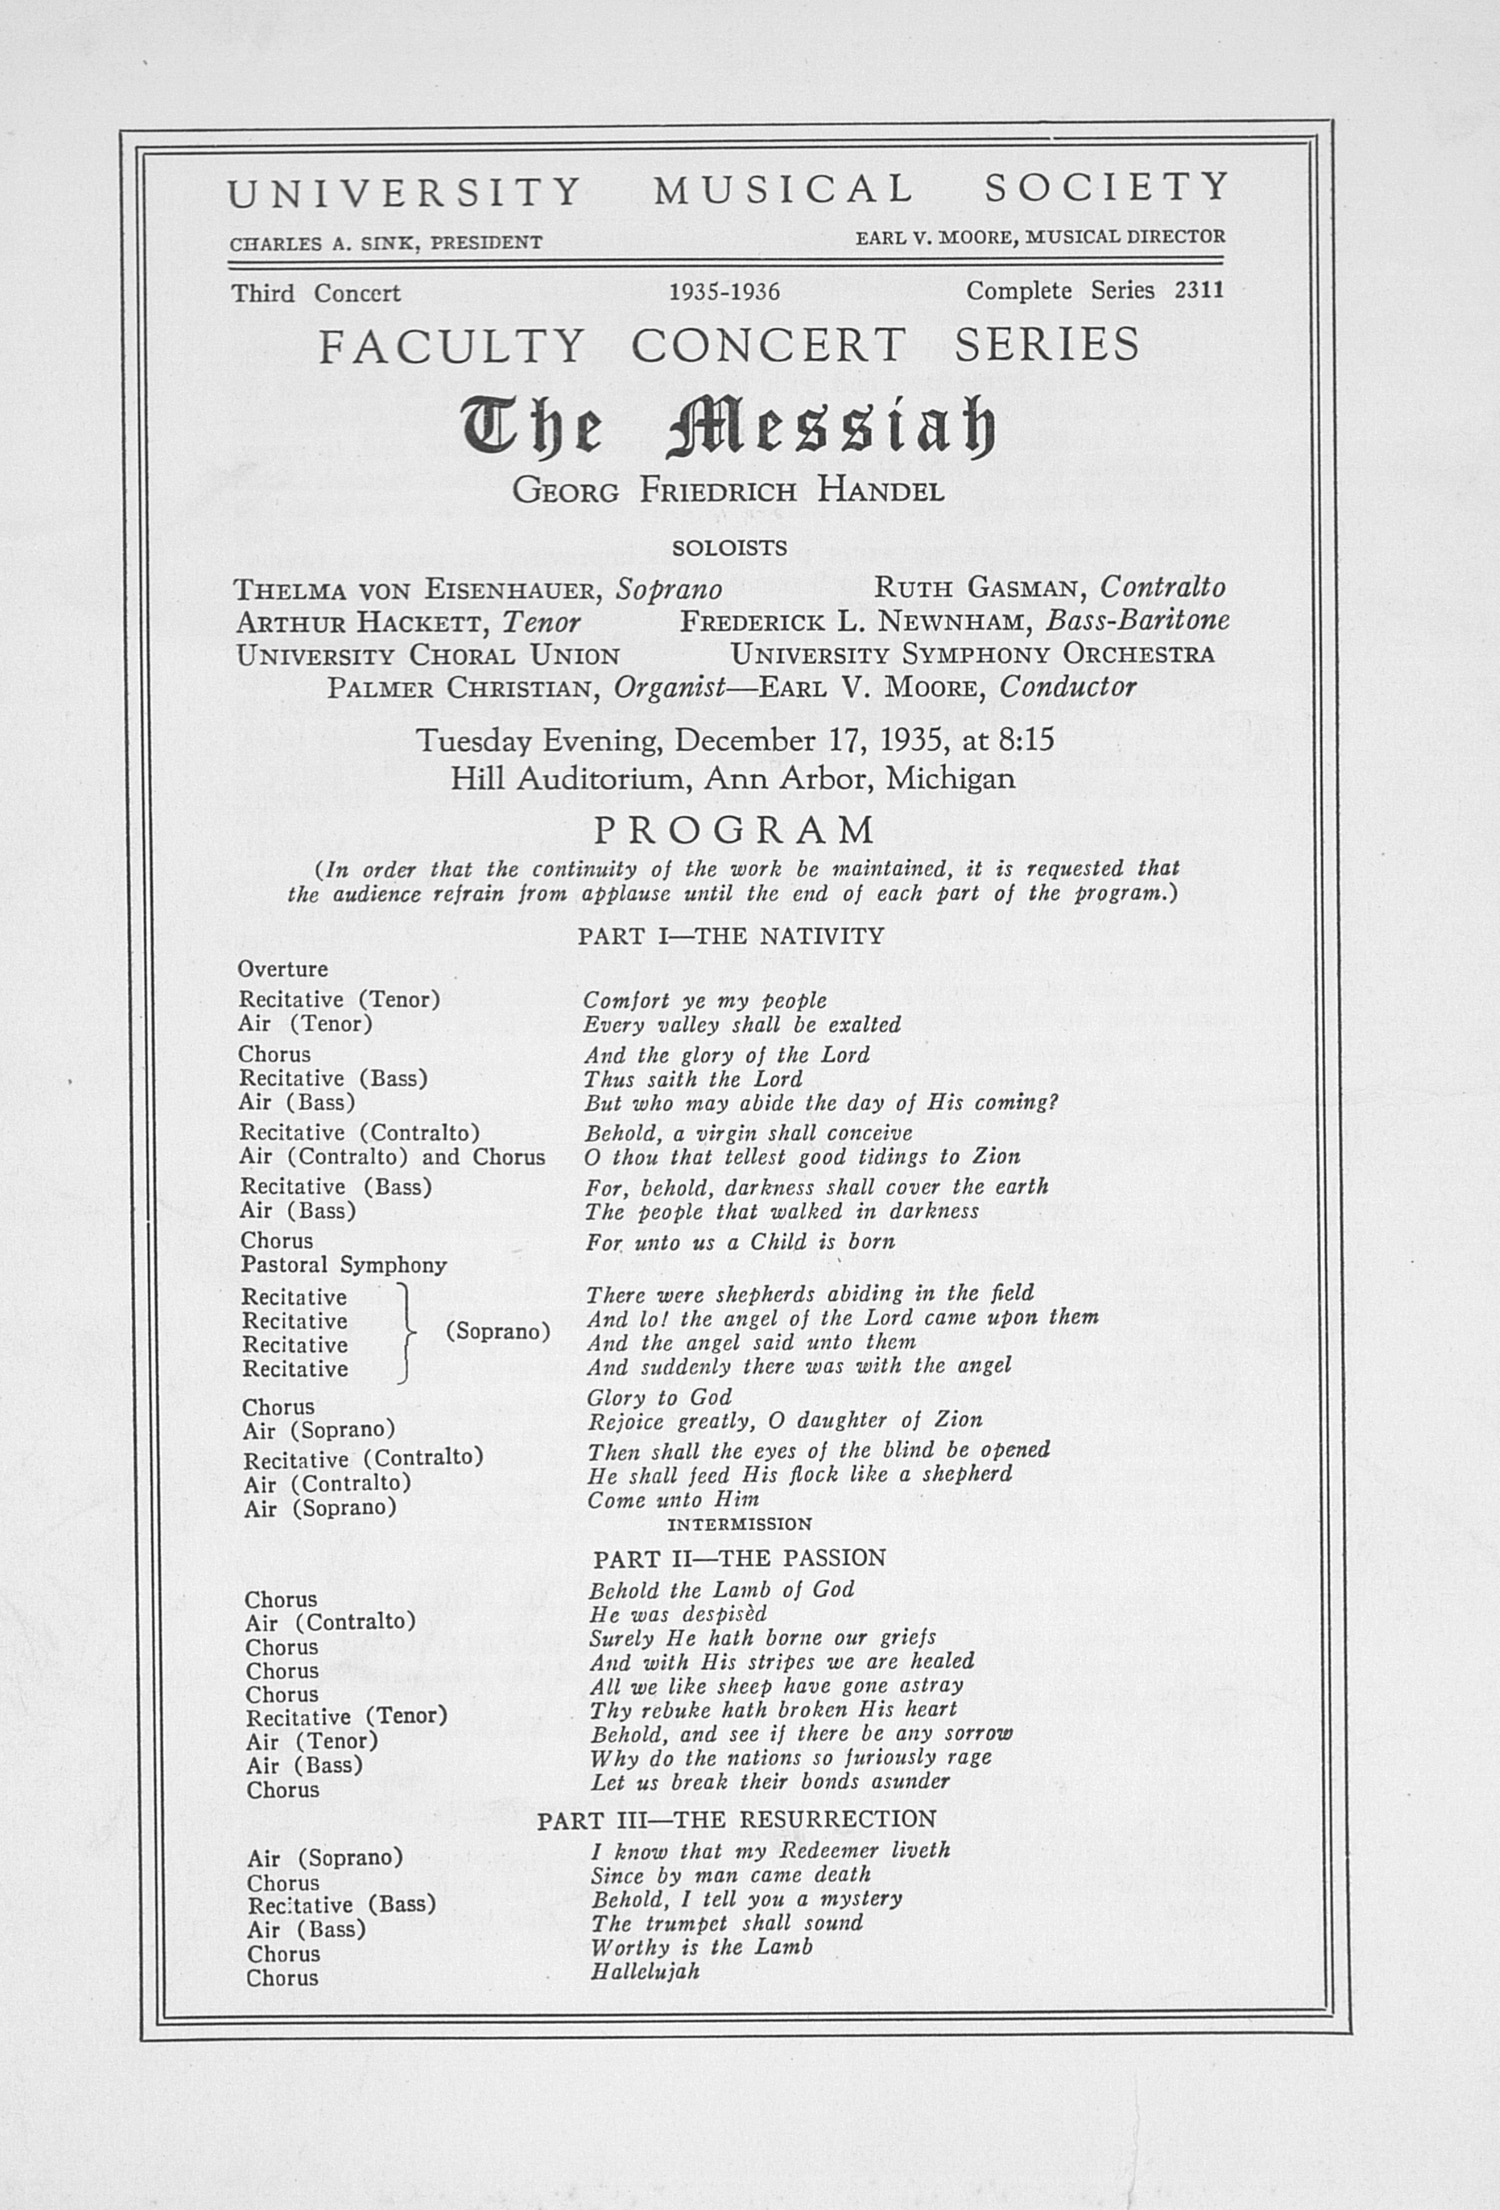 UMS Concert Program, December 17, 1935: The Messiah -- Georg Friedrich Handel image